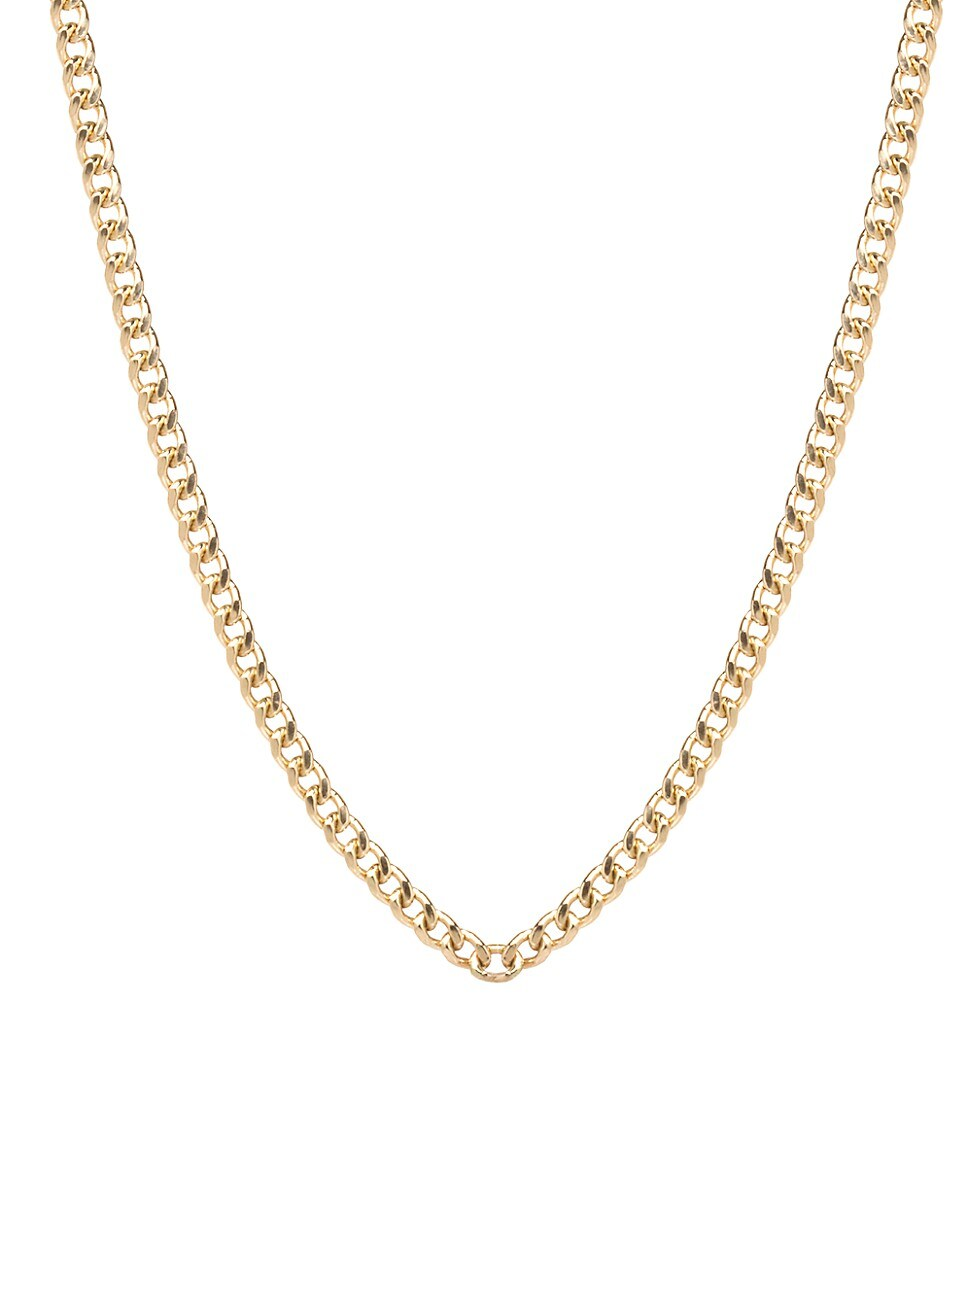 Zoë Chicco Women's Heavy Metal 14k Yellow Gold Small Curb-link Necklace